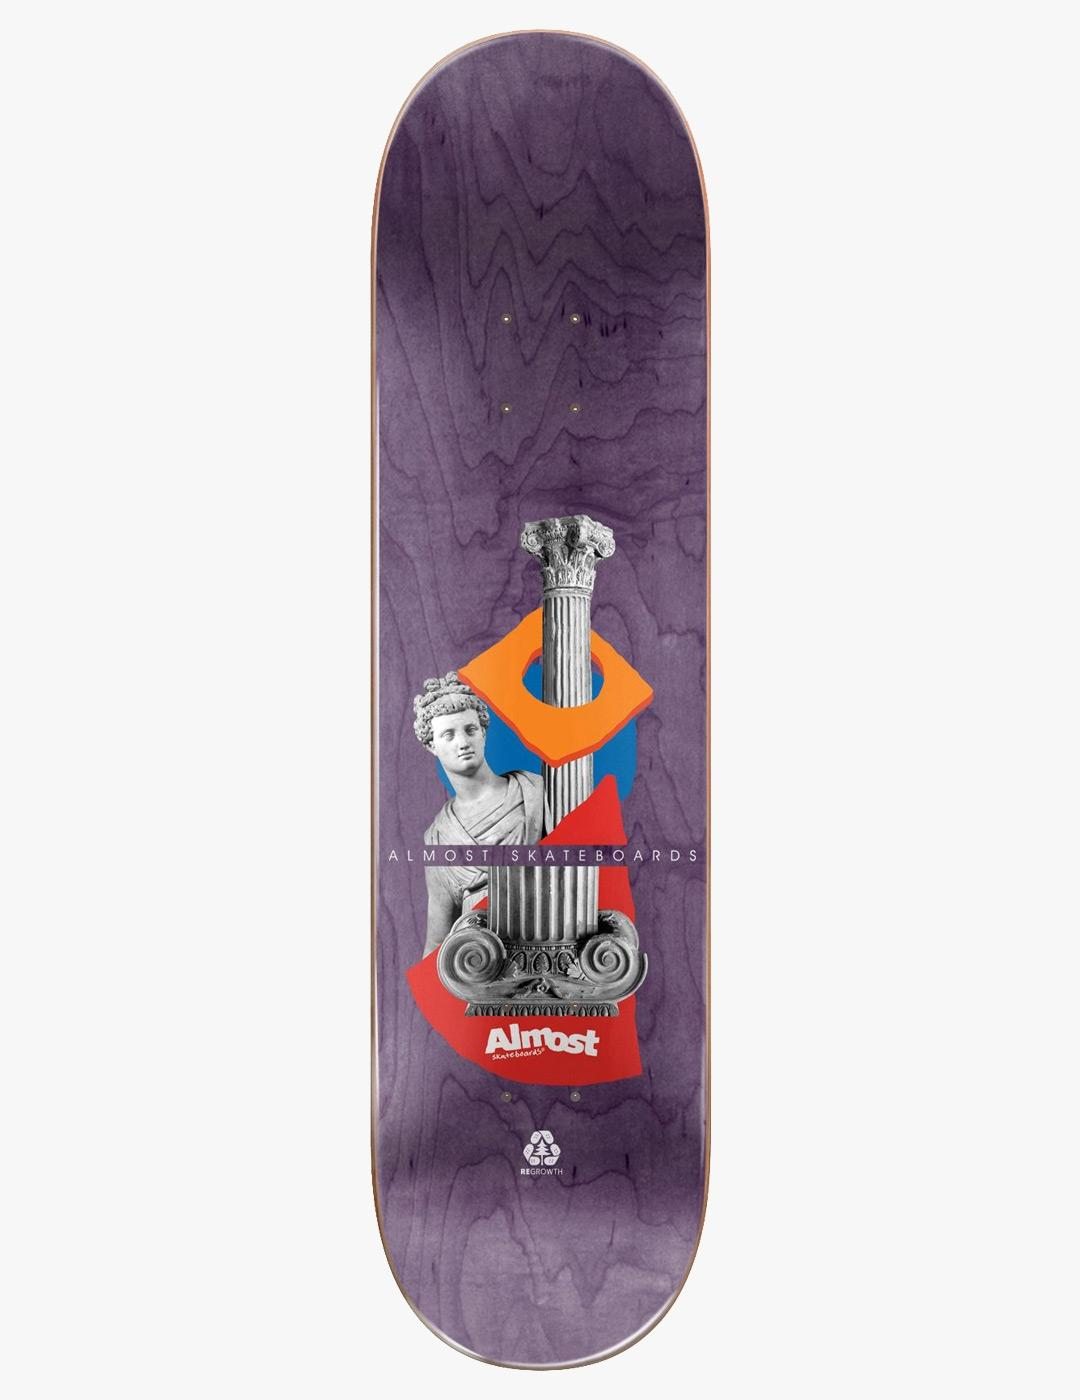 Tabla Skate DILO RELICS 8.0' - Youness Amrani Gree